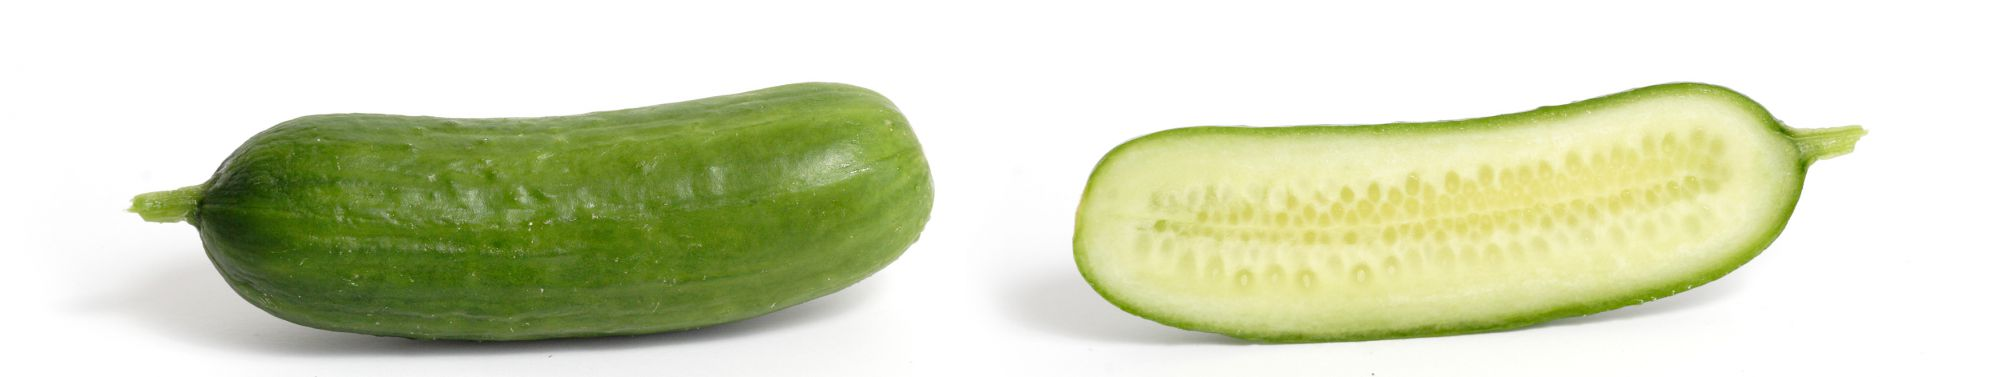 Cucumbers are great to eat when the summer is at its hottest. © Wikimedia Commons